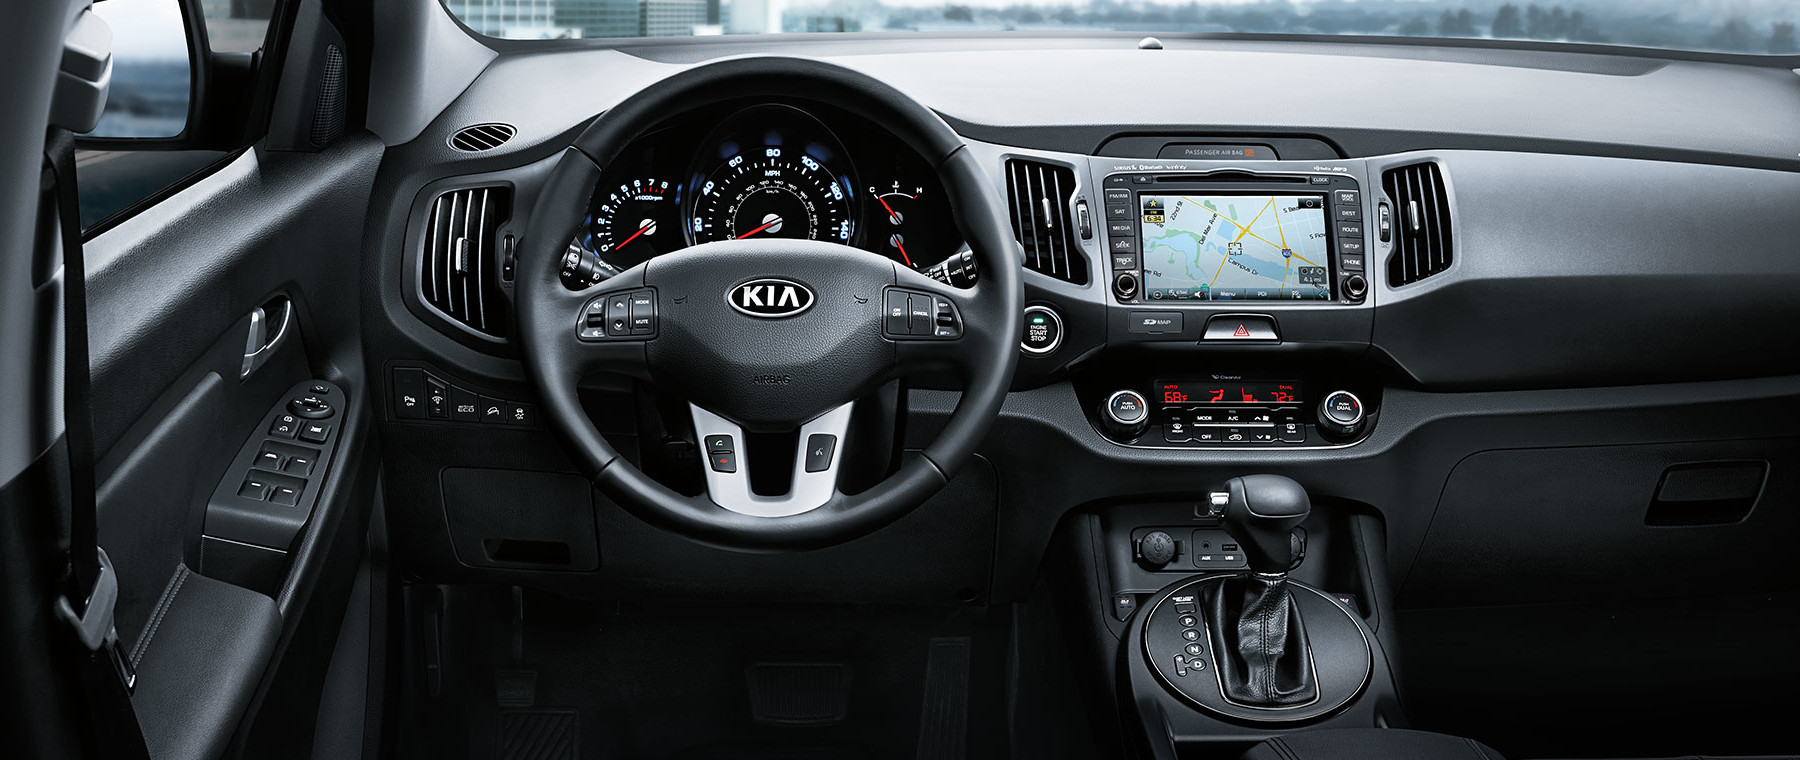 New 2016 Kia Sportage looking | Quirk Kia in Manchester NH